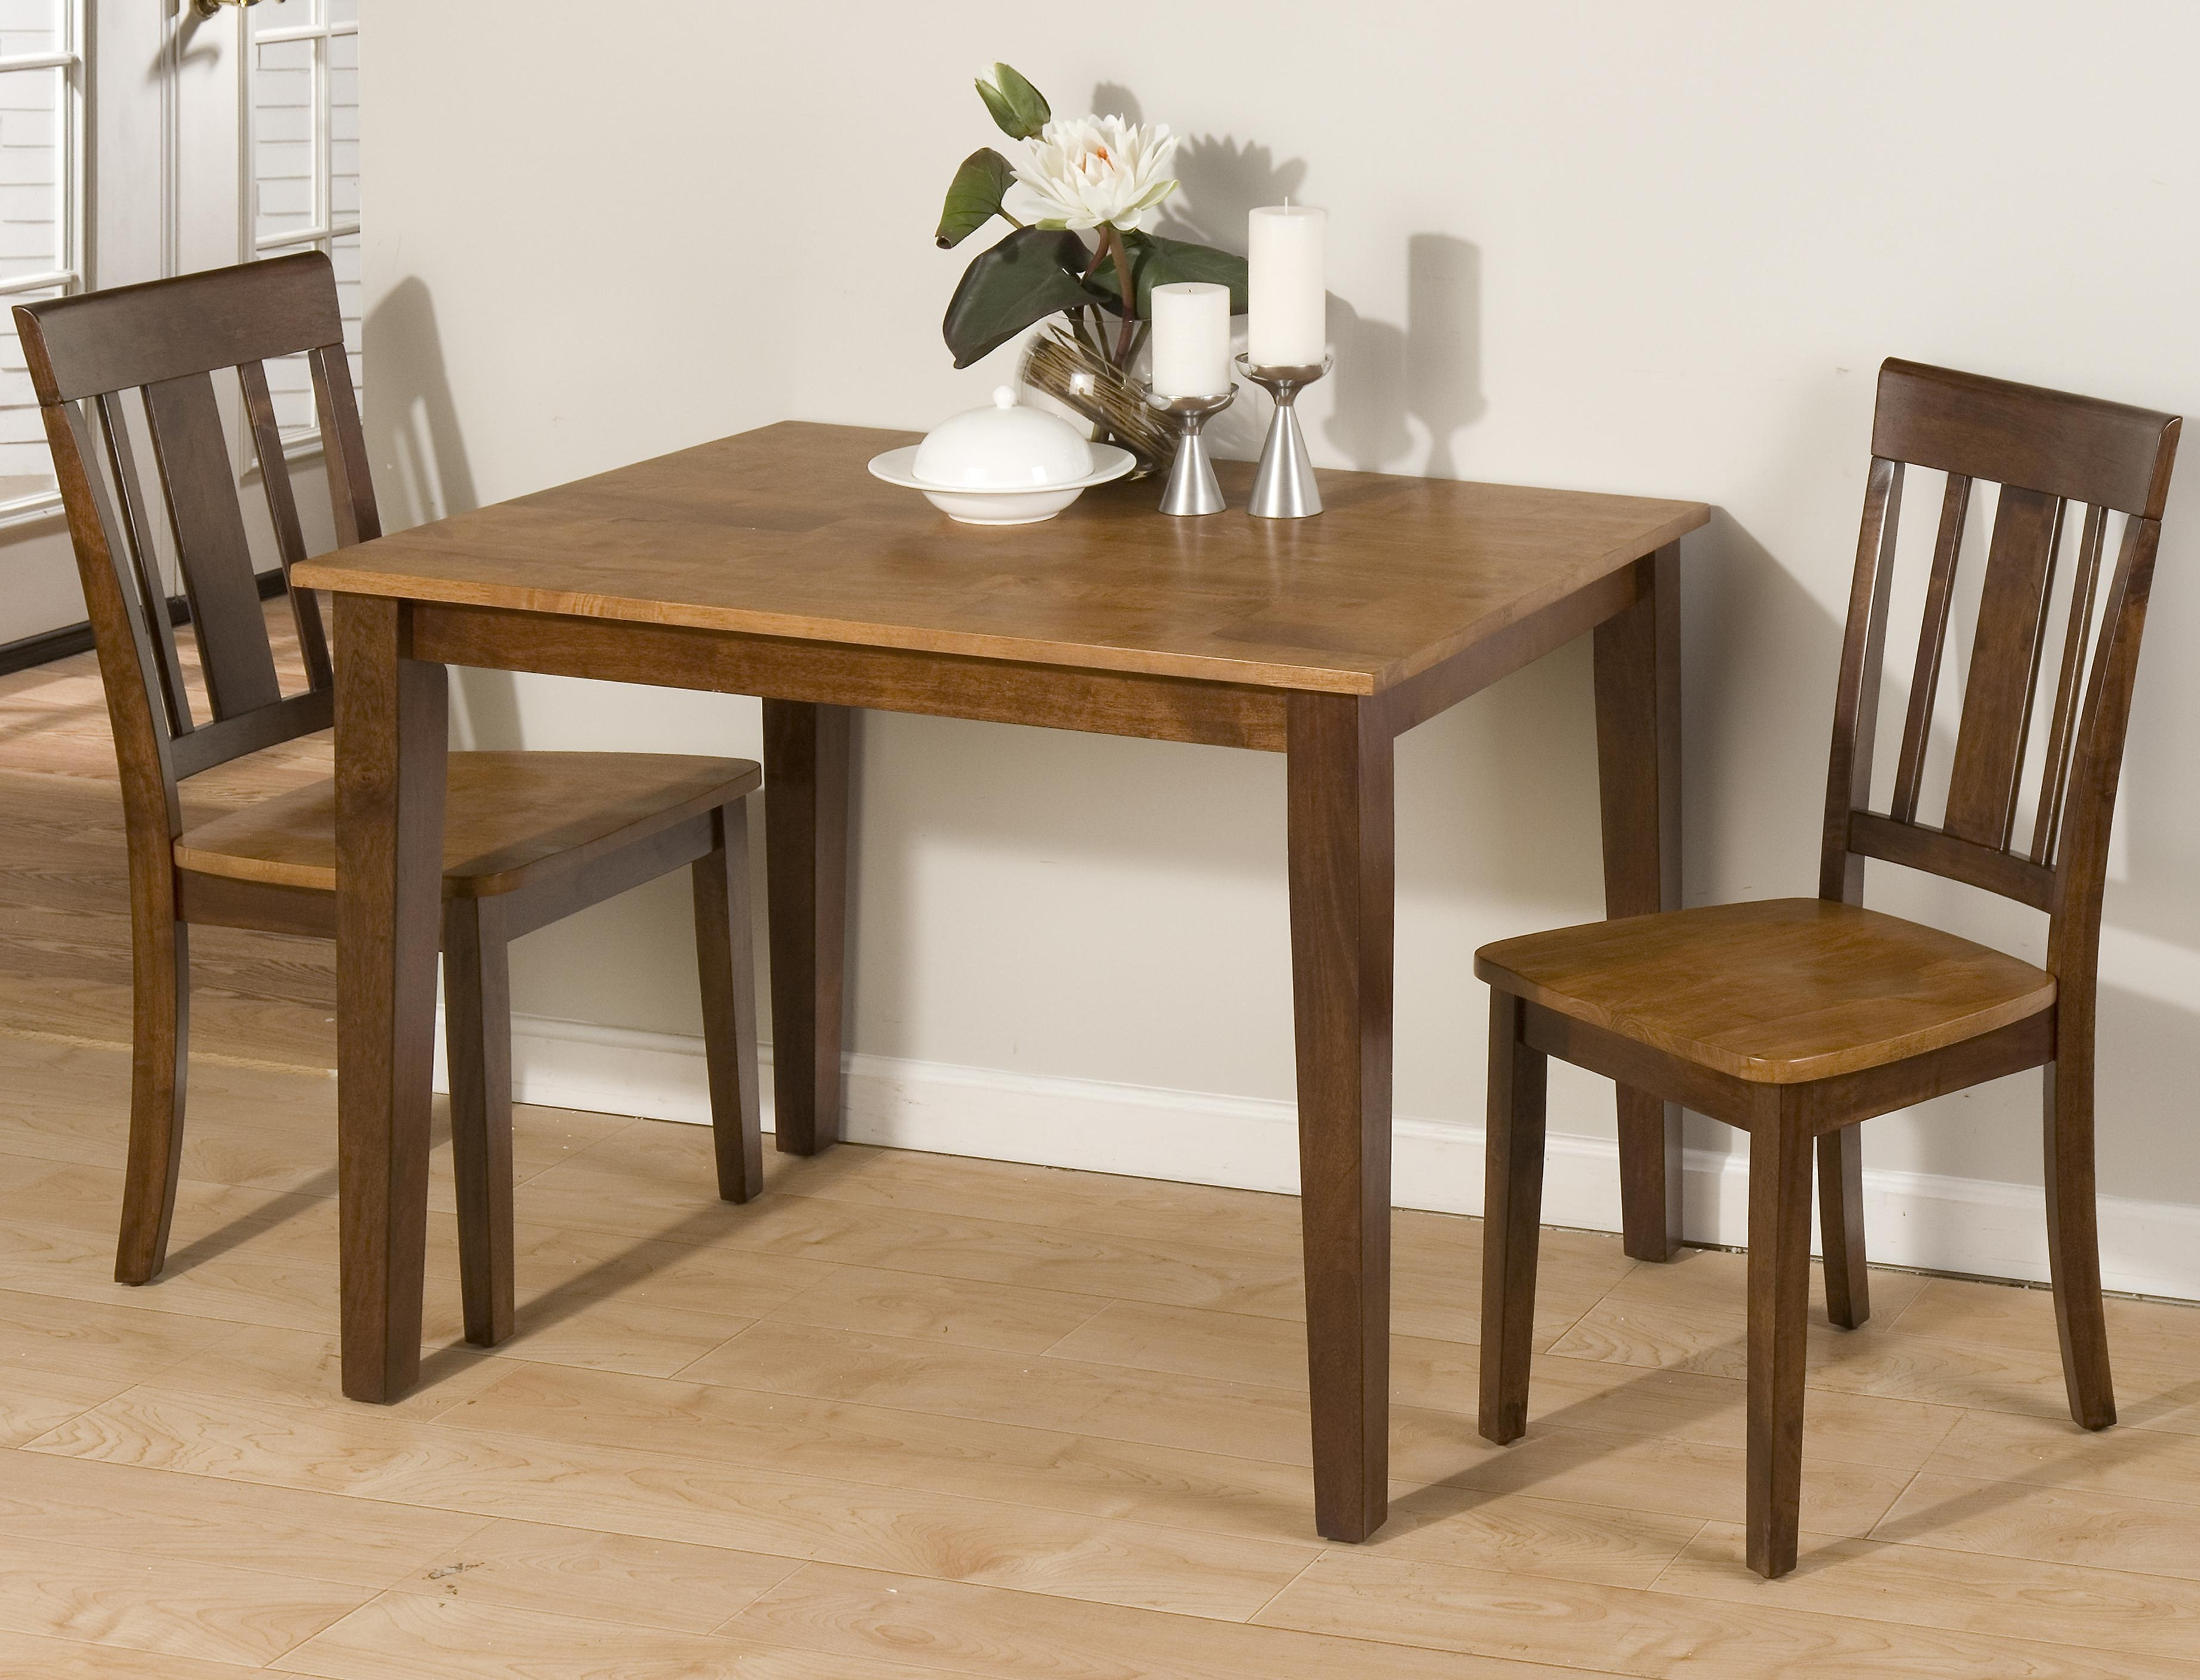 Well Known Lindy Espresso Rectangle Dining Tables Intended For Jofran Kura Espresso And Canyon Gold Two Tone Solid Rubberwood (View 20 of 25)